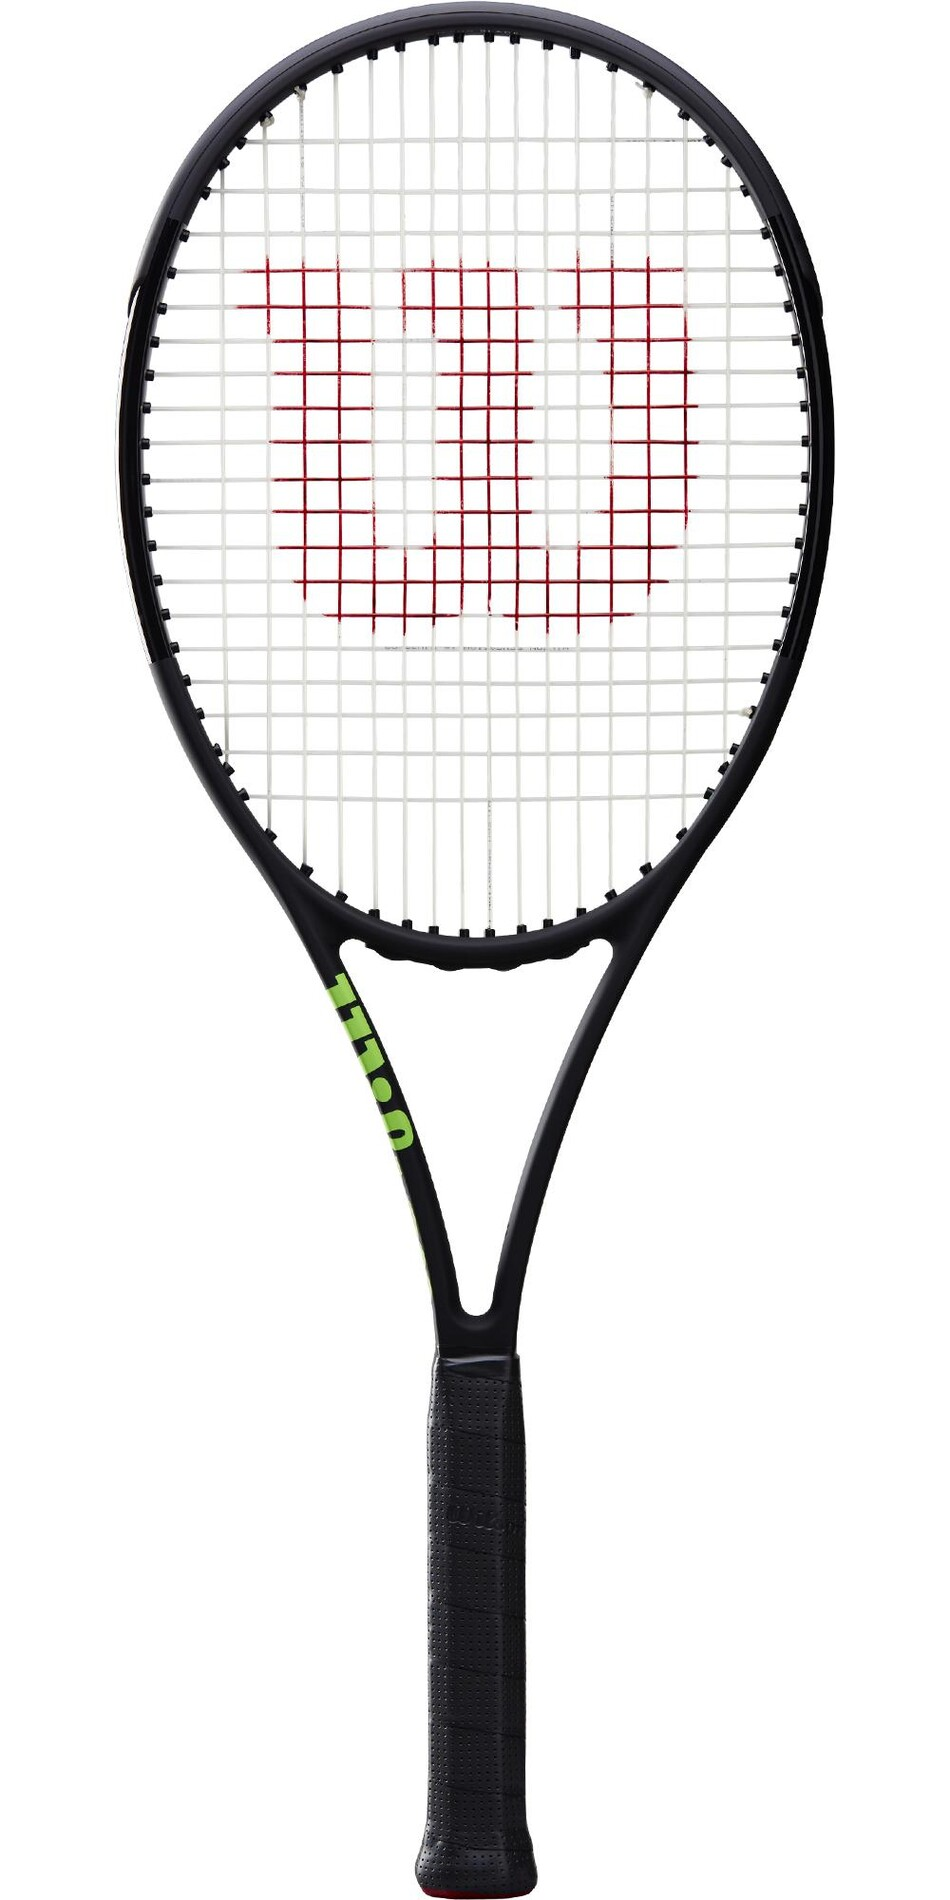 Wilson Blade 98 16x19 CV Tennis Racket - Black Frame Only | Great ...